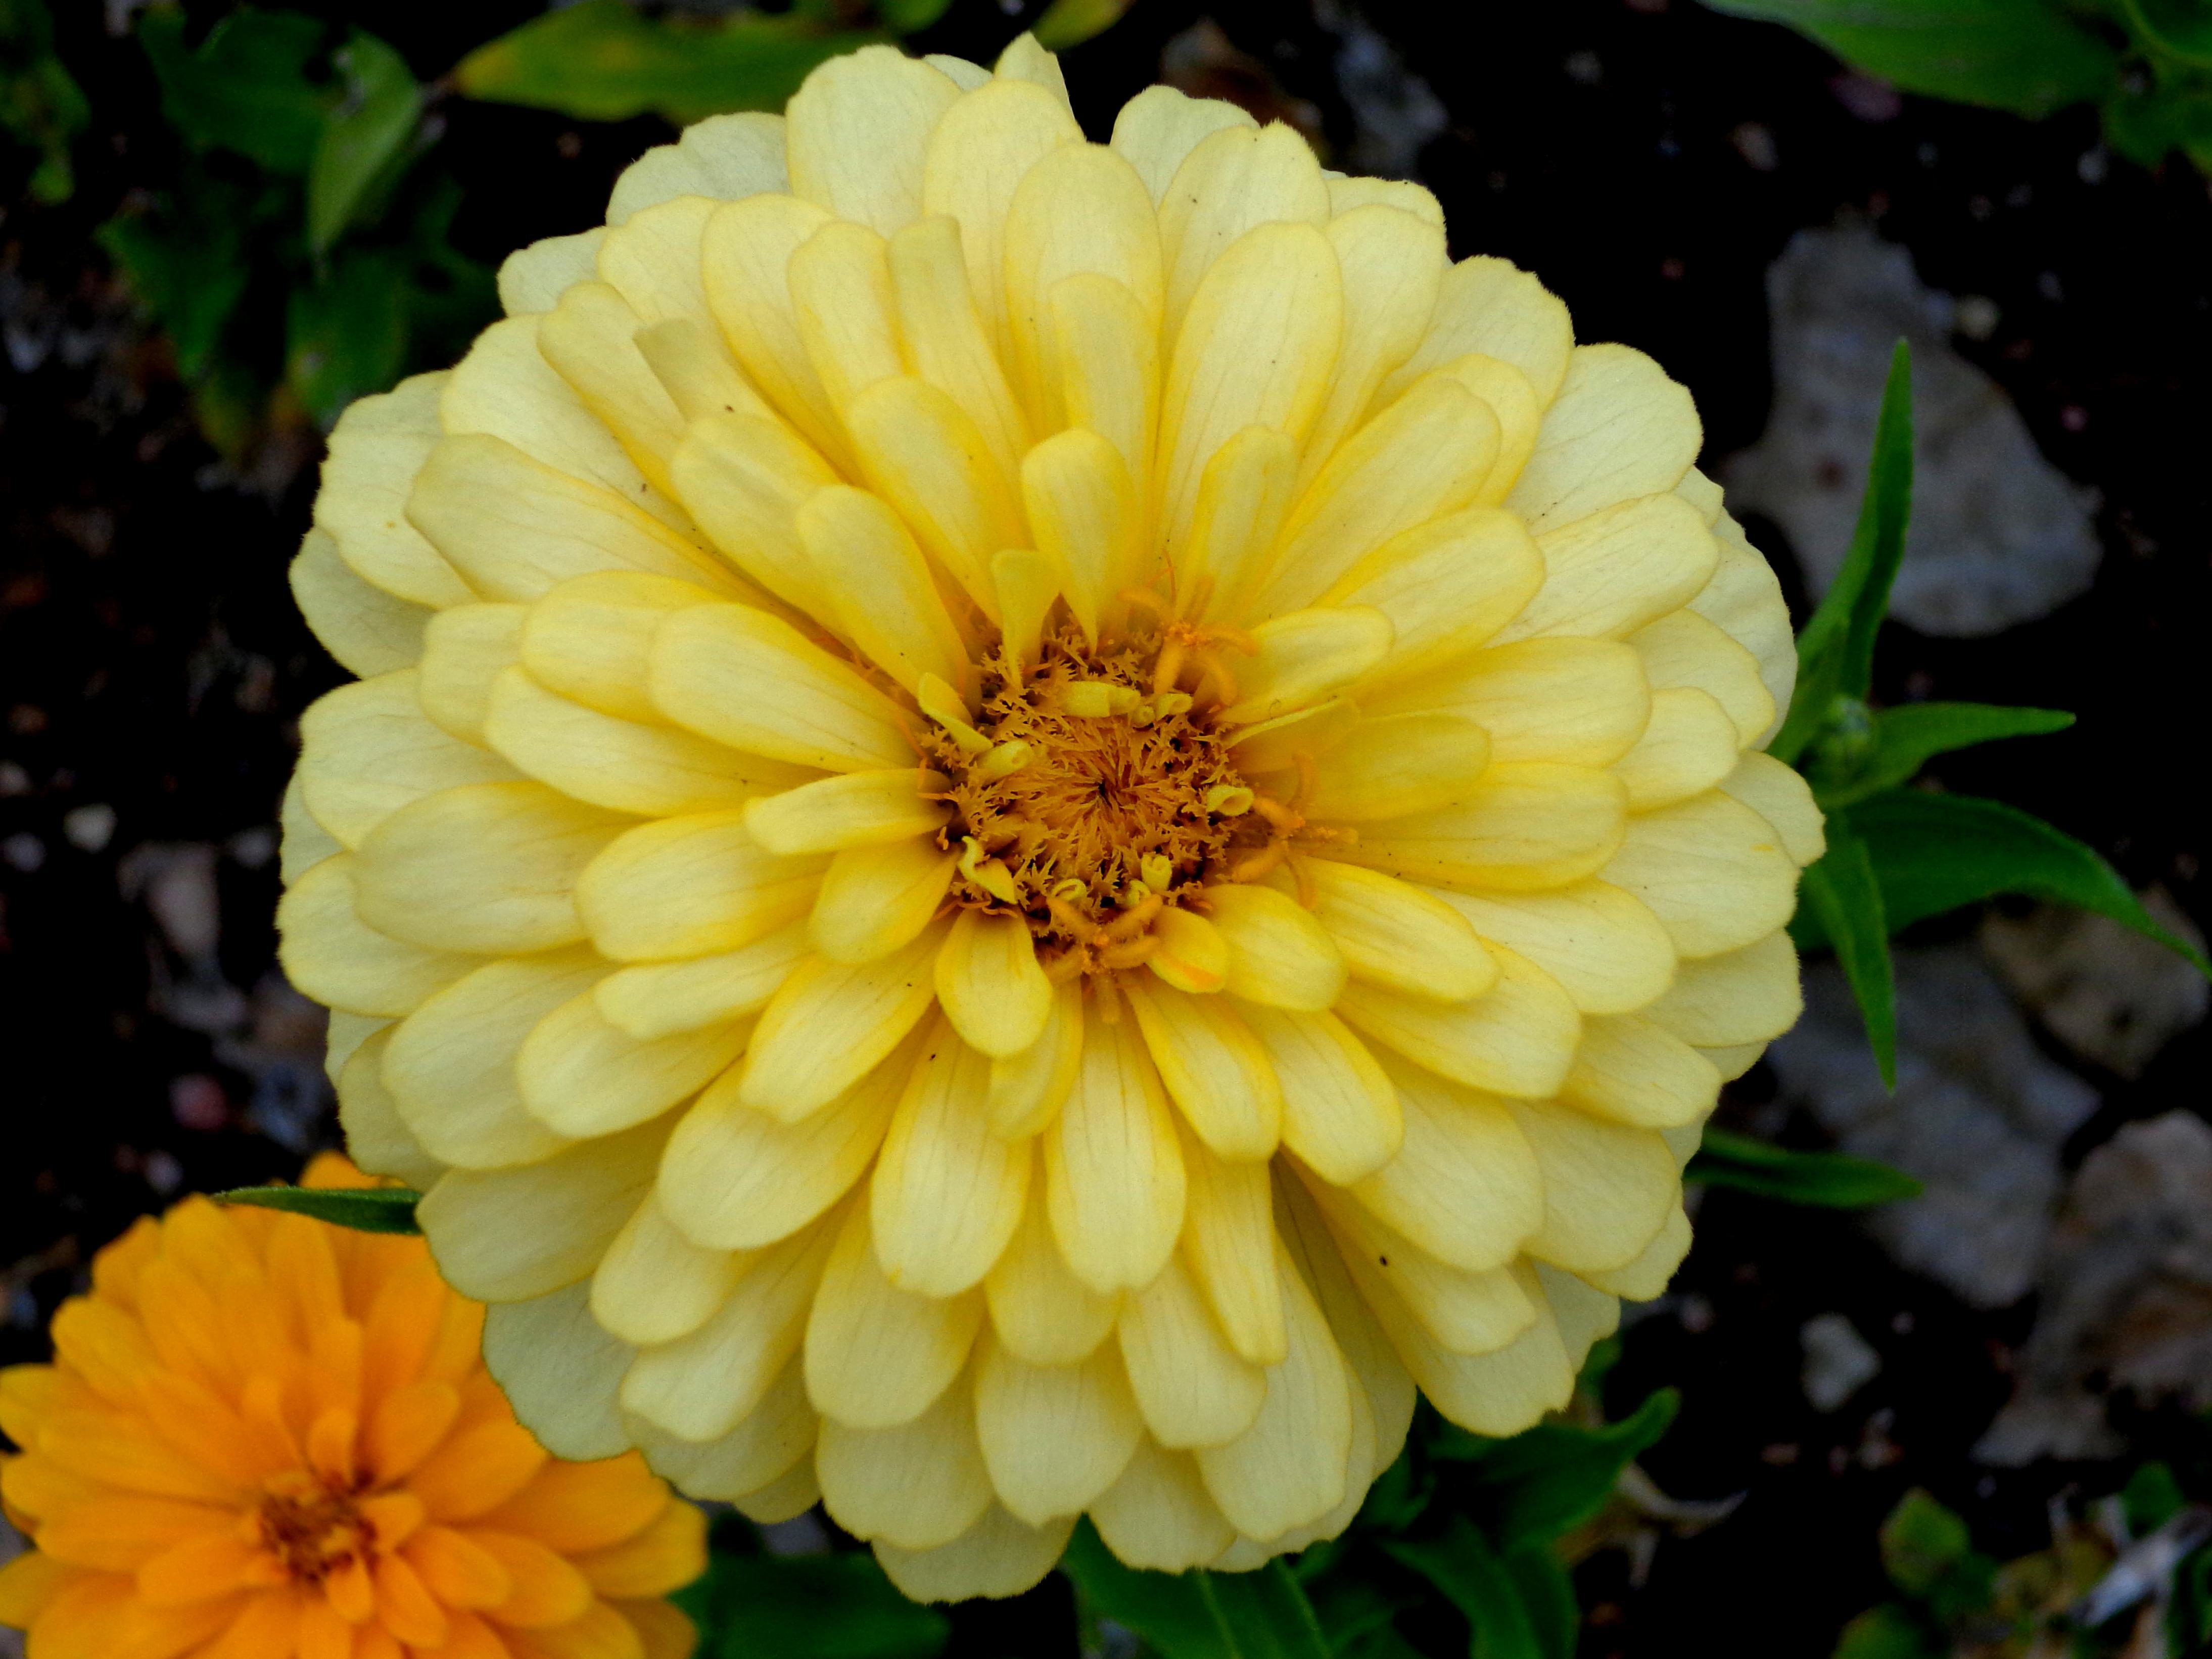 Free picture yellow flower zinnia flower yellow flower zinnia flower mightylinksfo